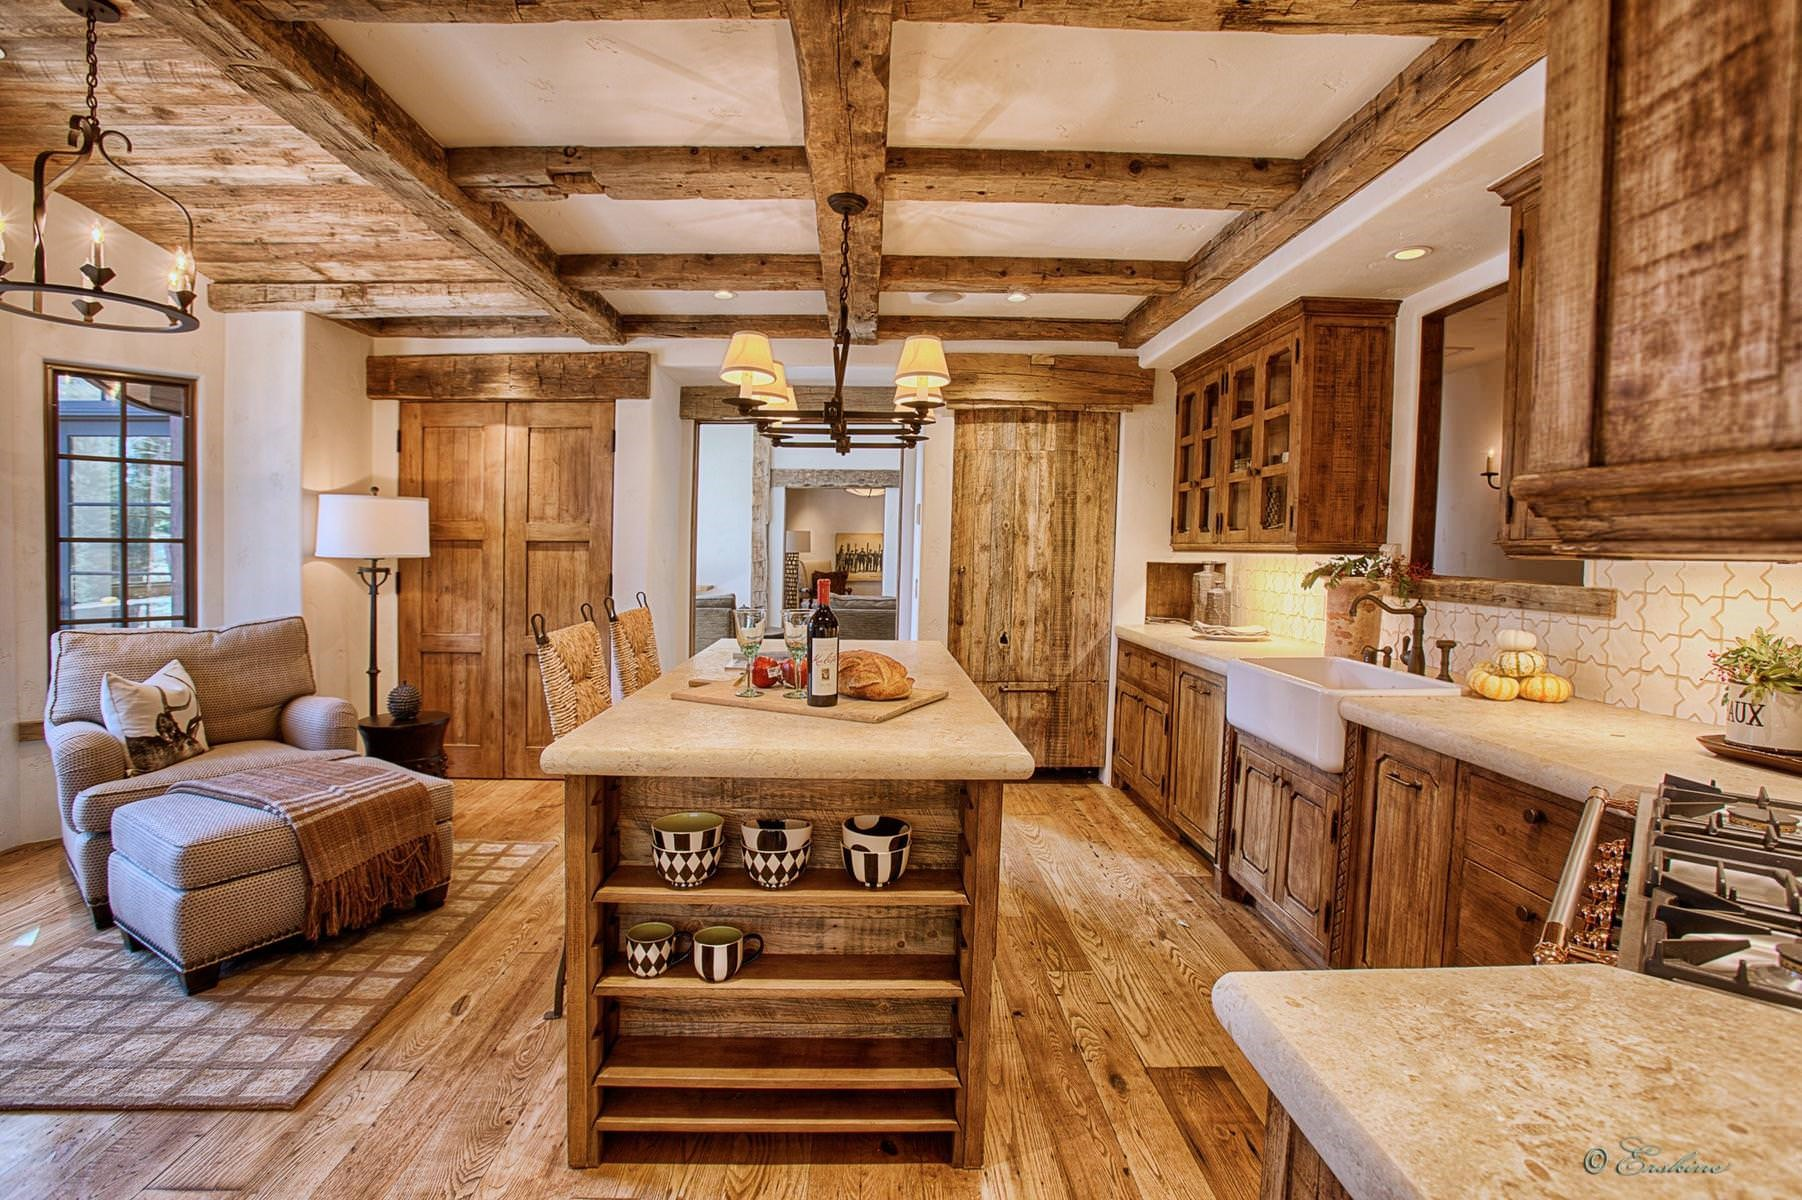 3 Farmhouse Style Kitchens That Will Make You Swoon